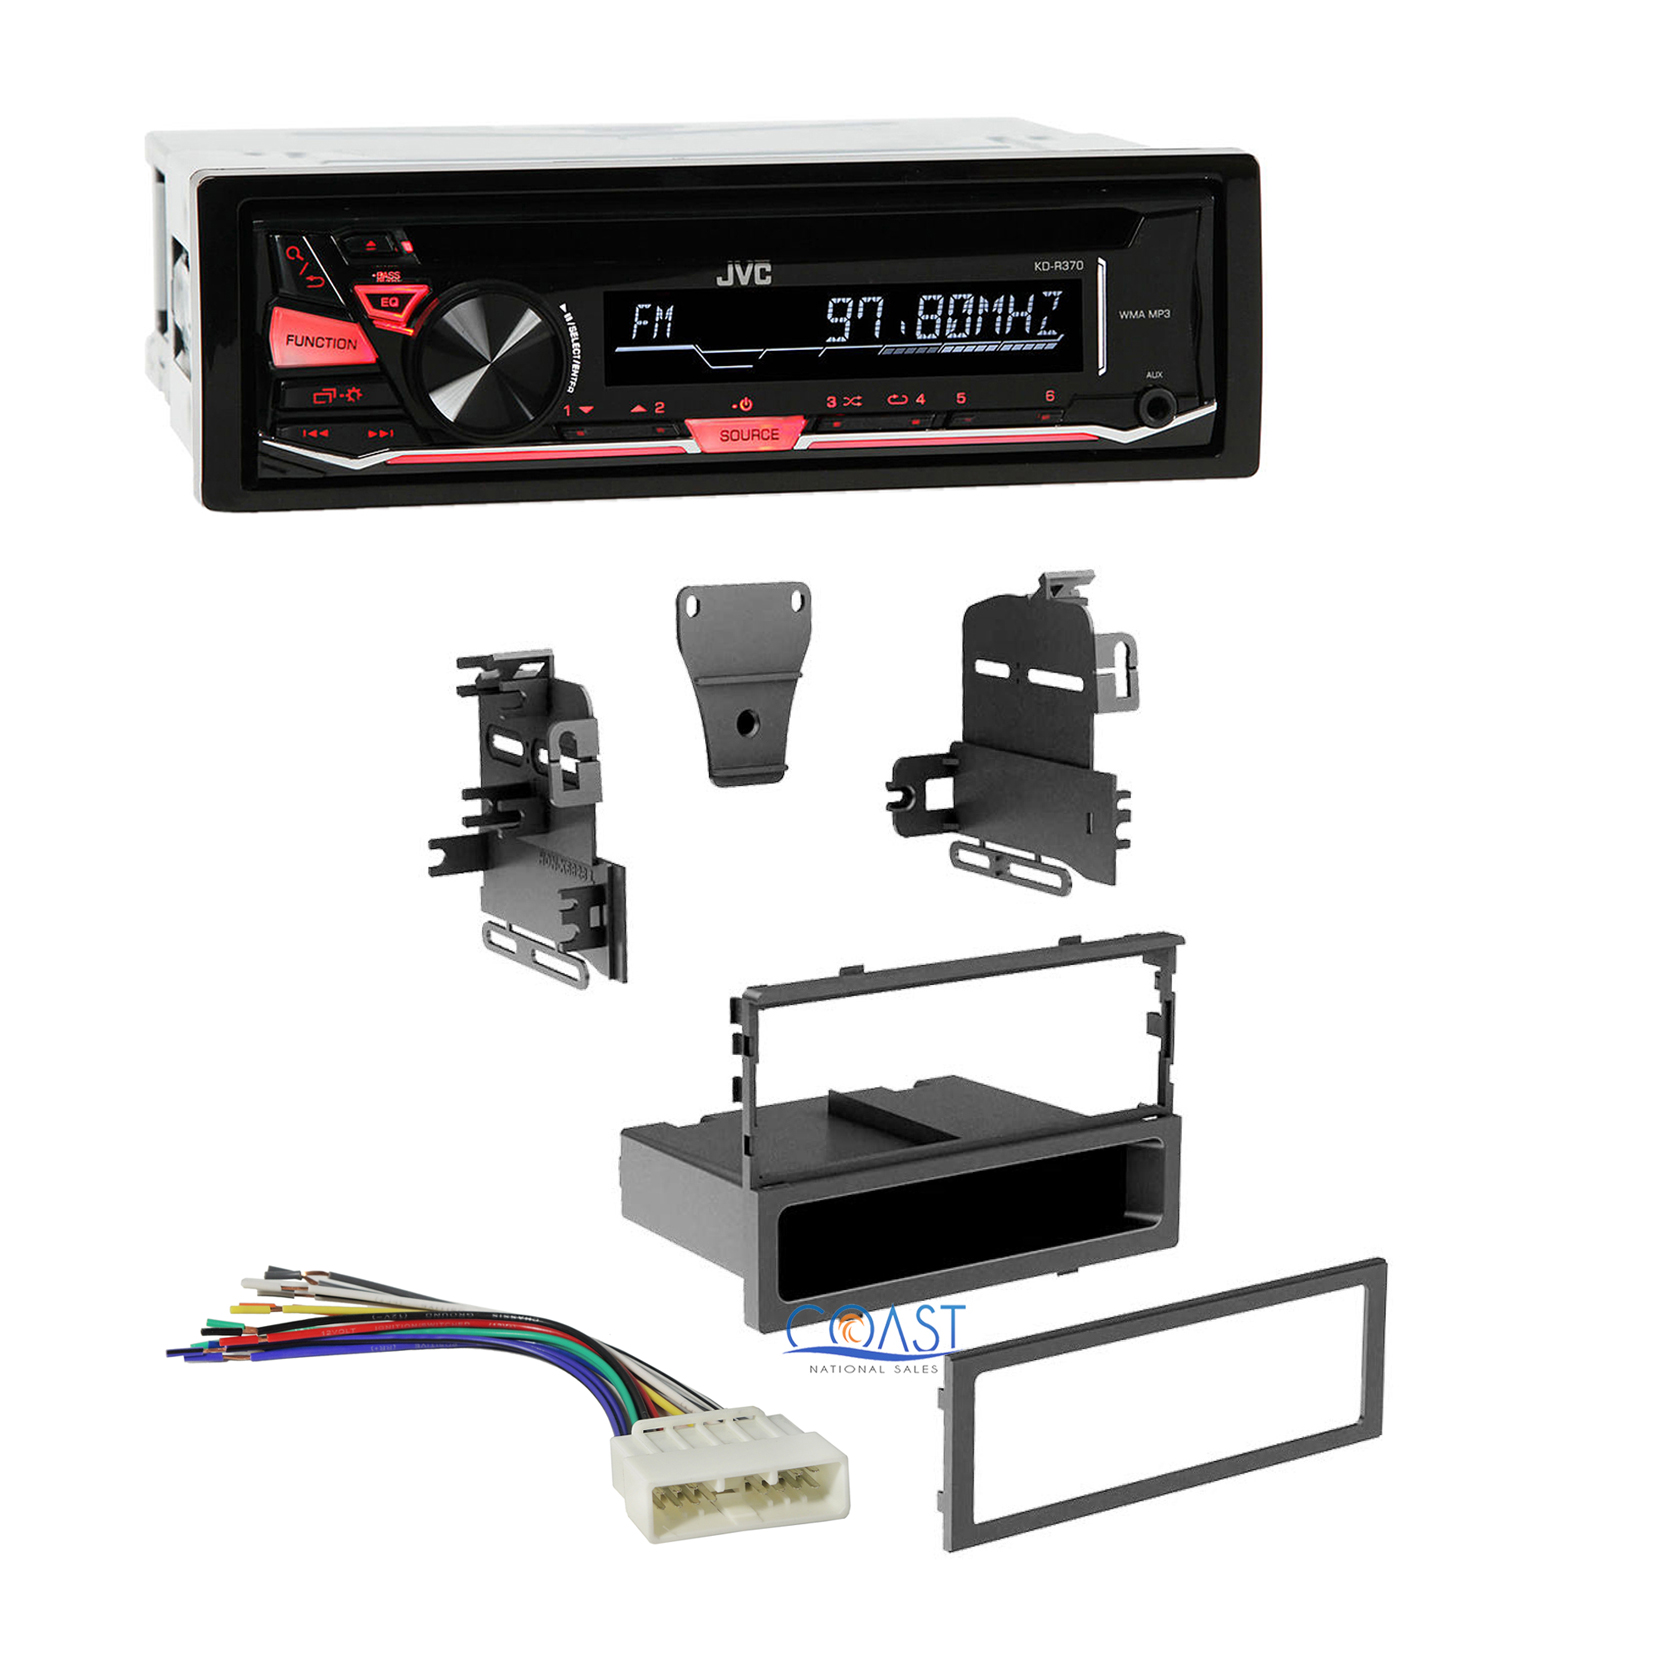 jvc car radio stereo single din dash kit harness for 1986 ... jvc car stereo wiring harness to 1999 malibu #3